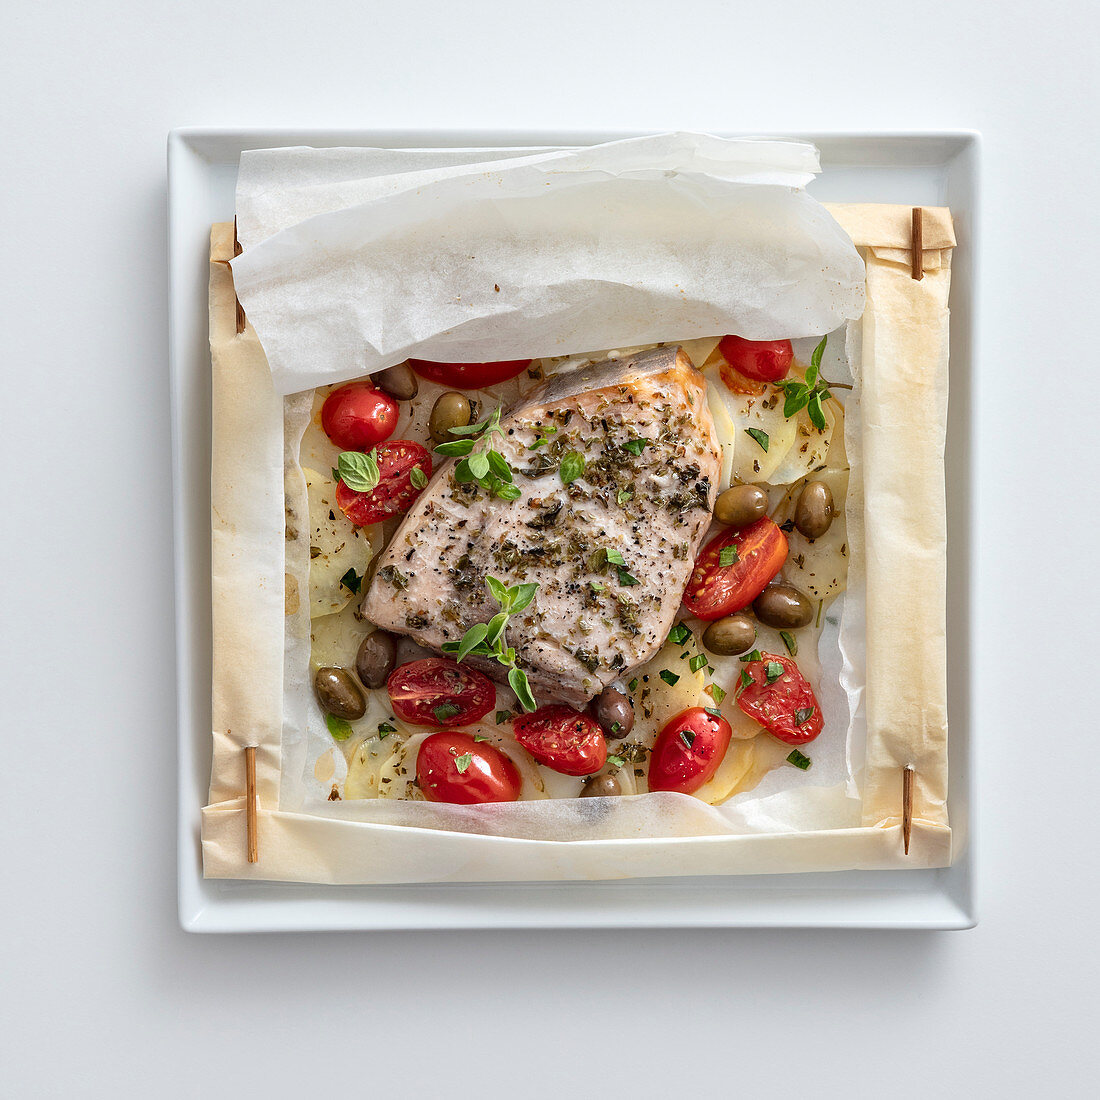 Swordfish with potatoes, date tomatoes and olives